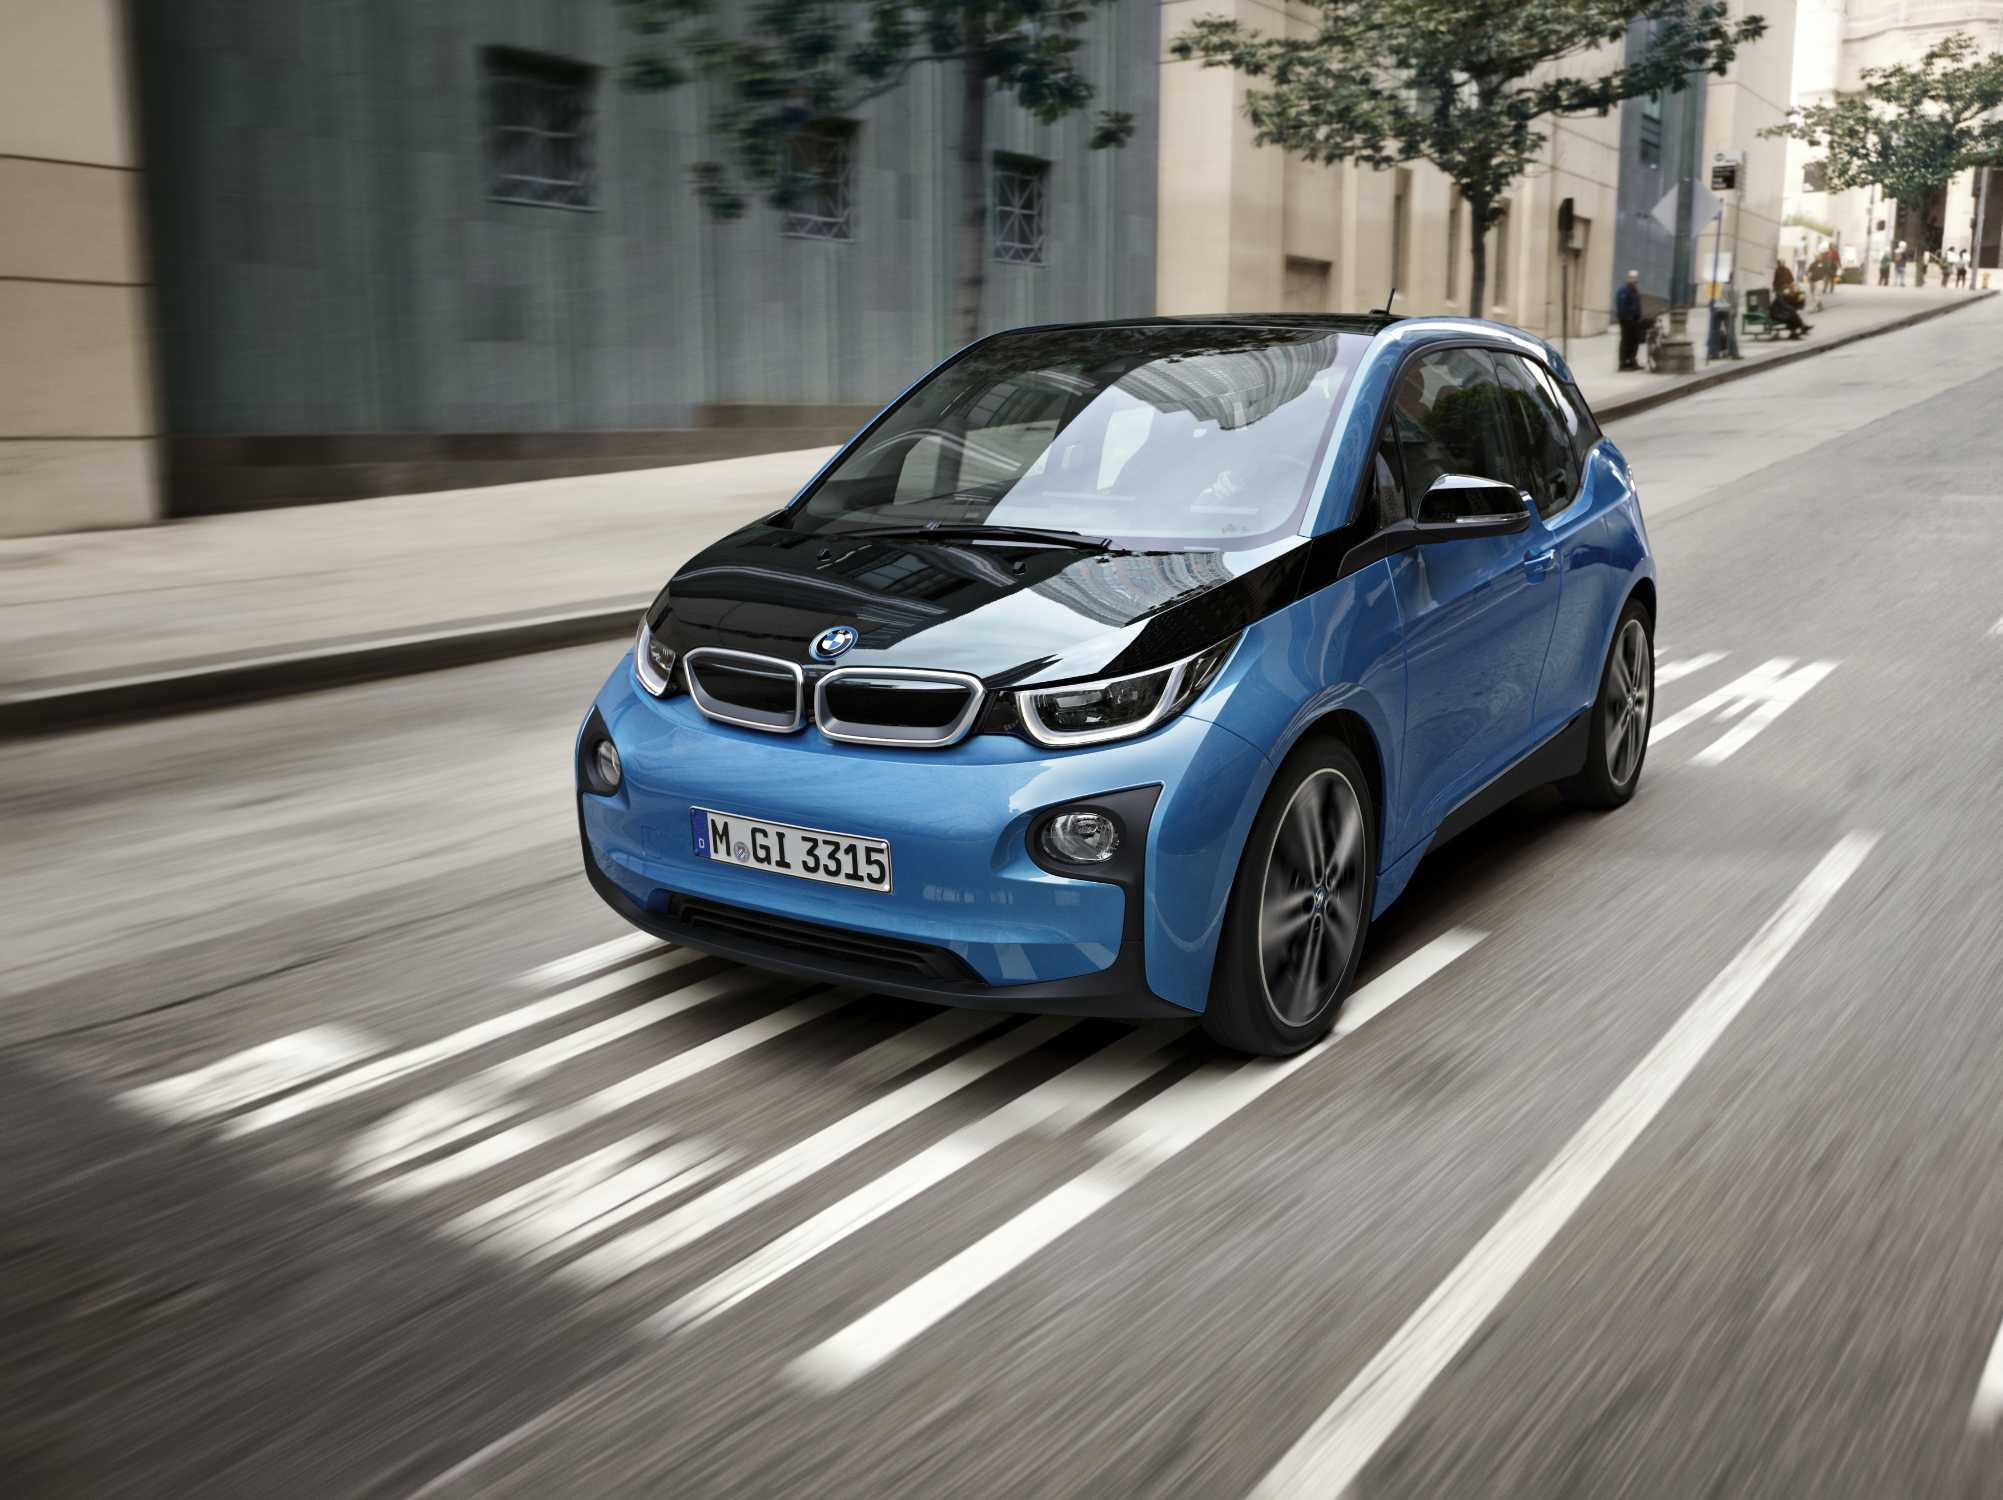 The New 2017 Bmw I3 94 Ah More Range Paired To High Level Dynamic